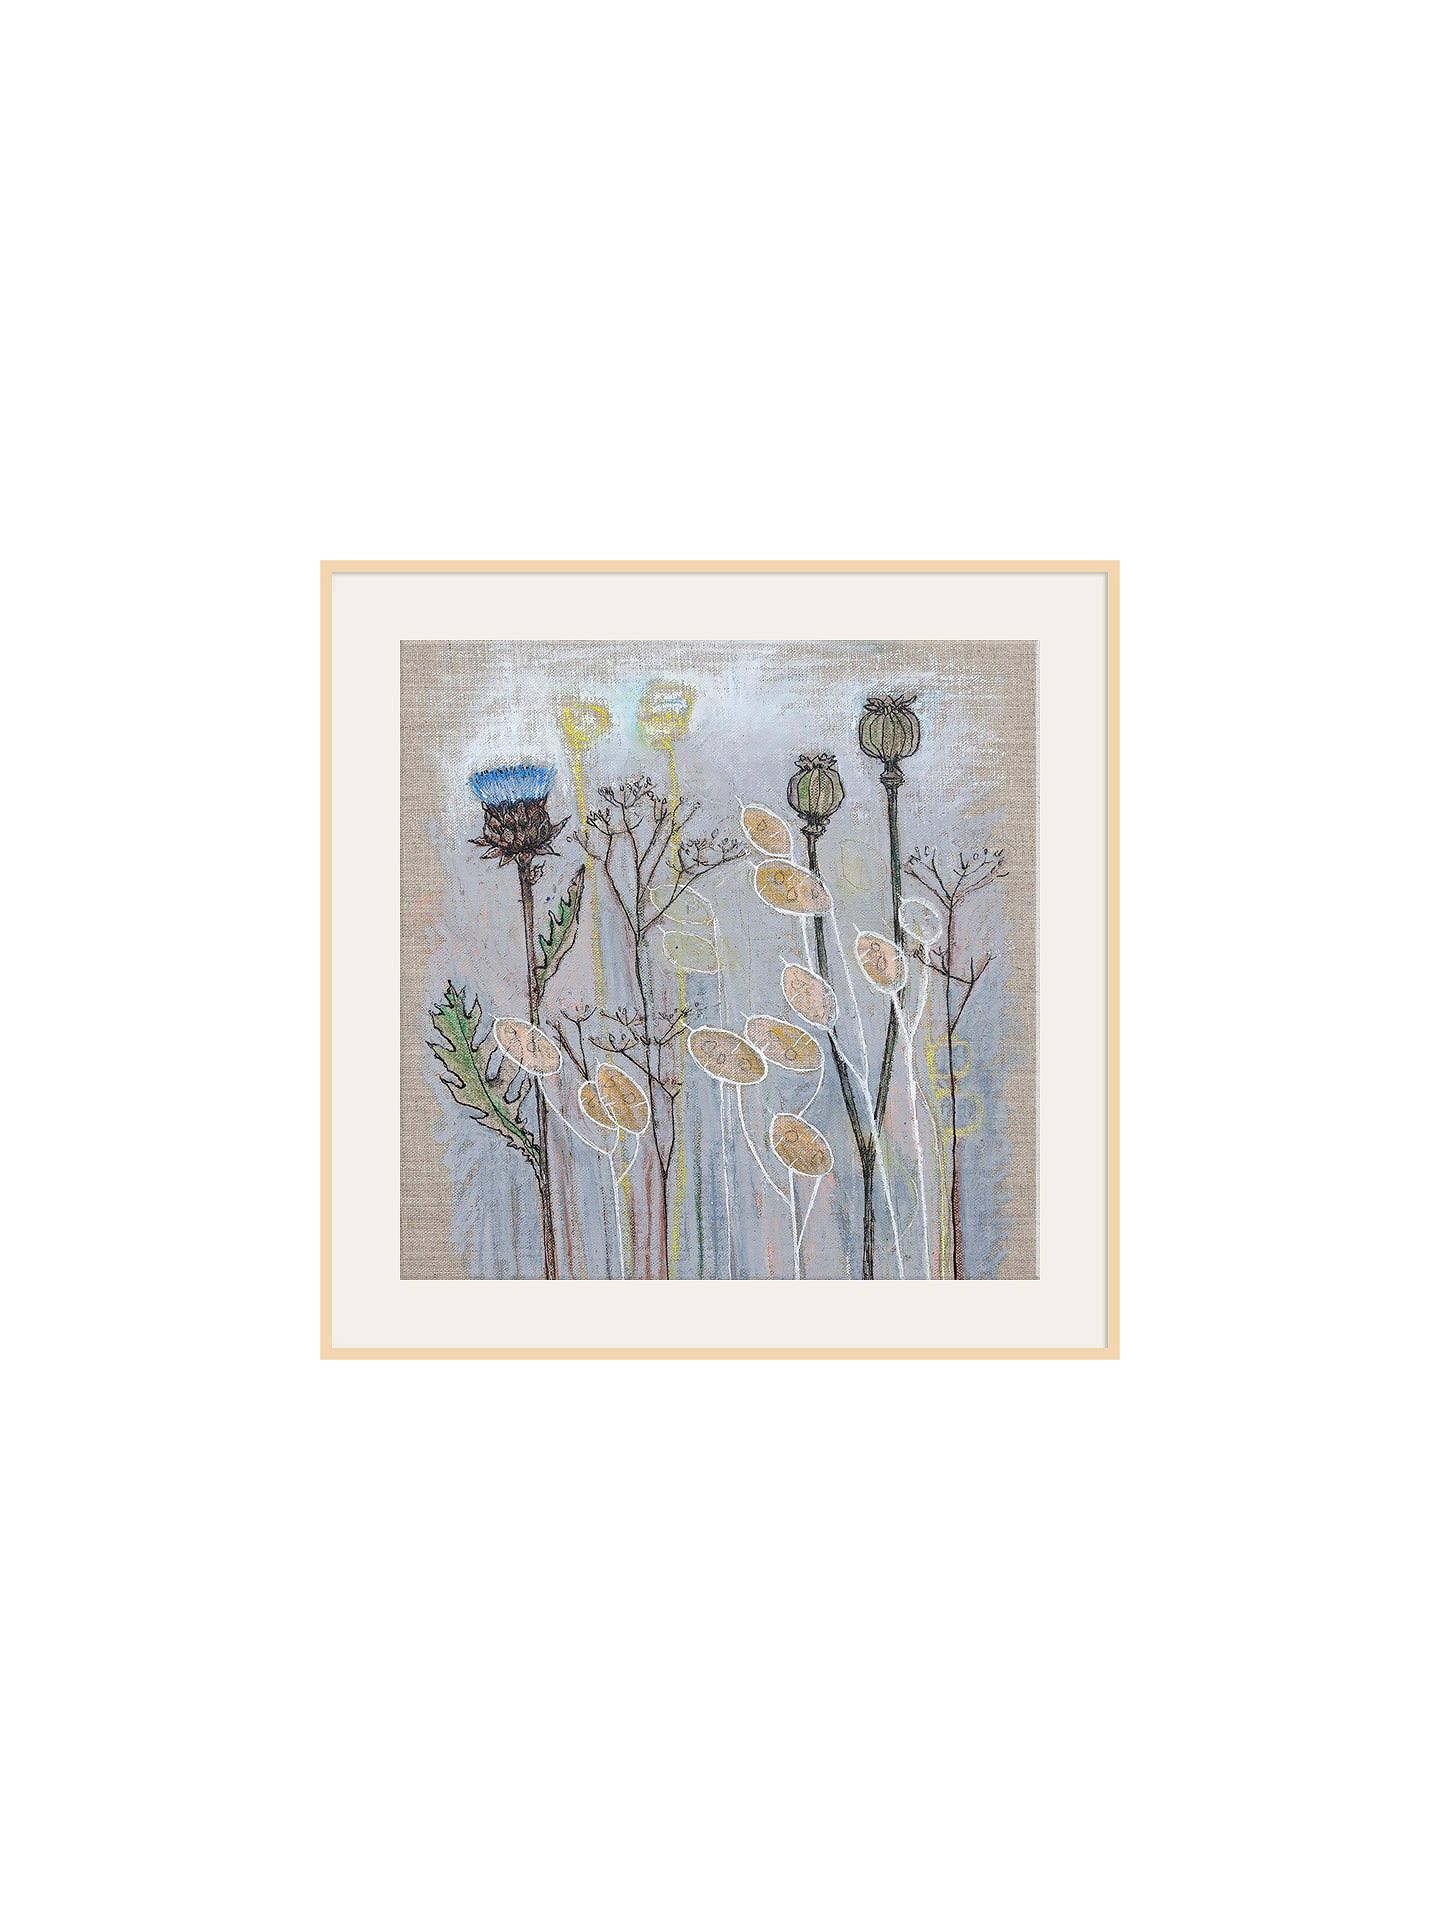 Buy Shyama Ruffell - On The Up & Up, Natural Ash Framed Print, 40 x 40cm Online at johnlewis.com